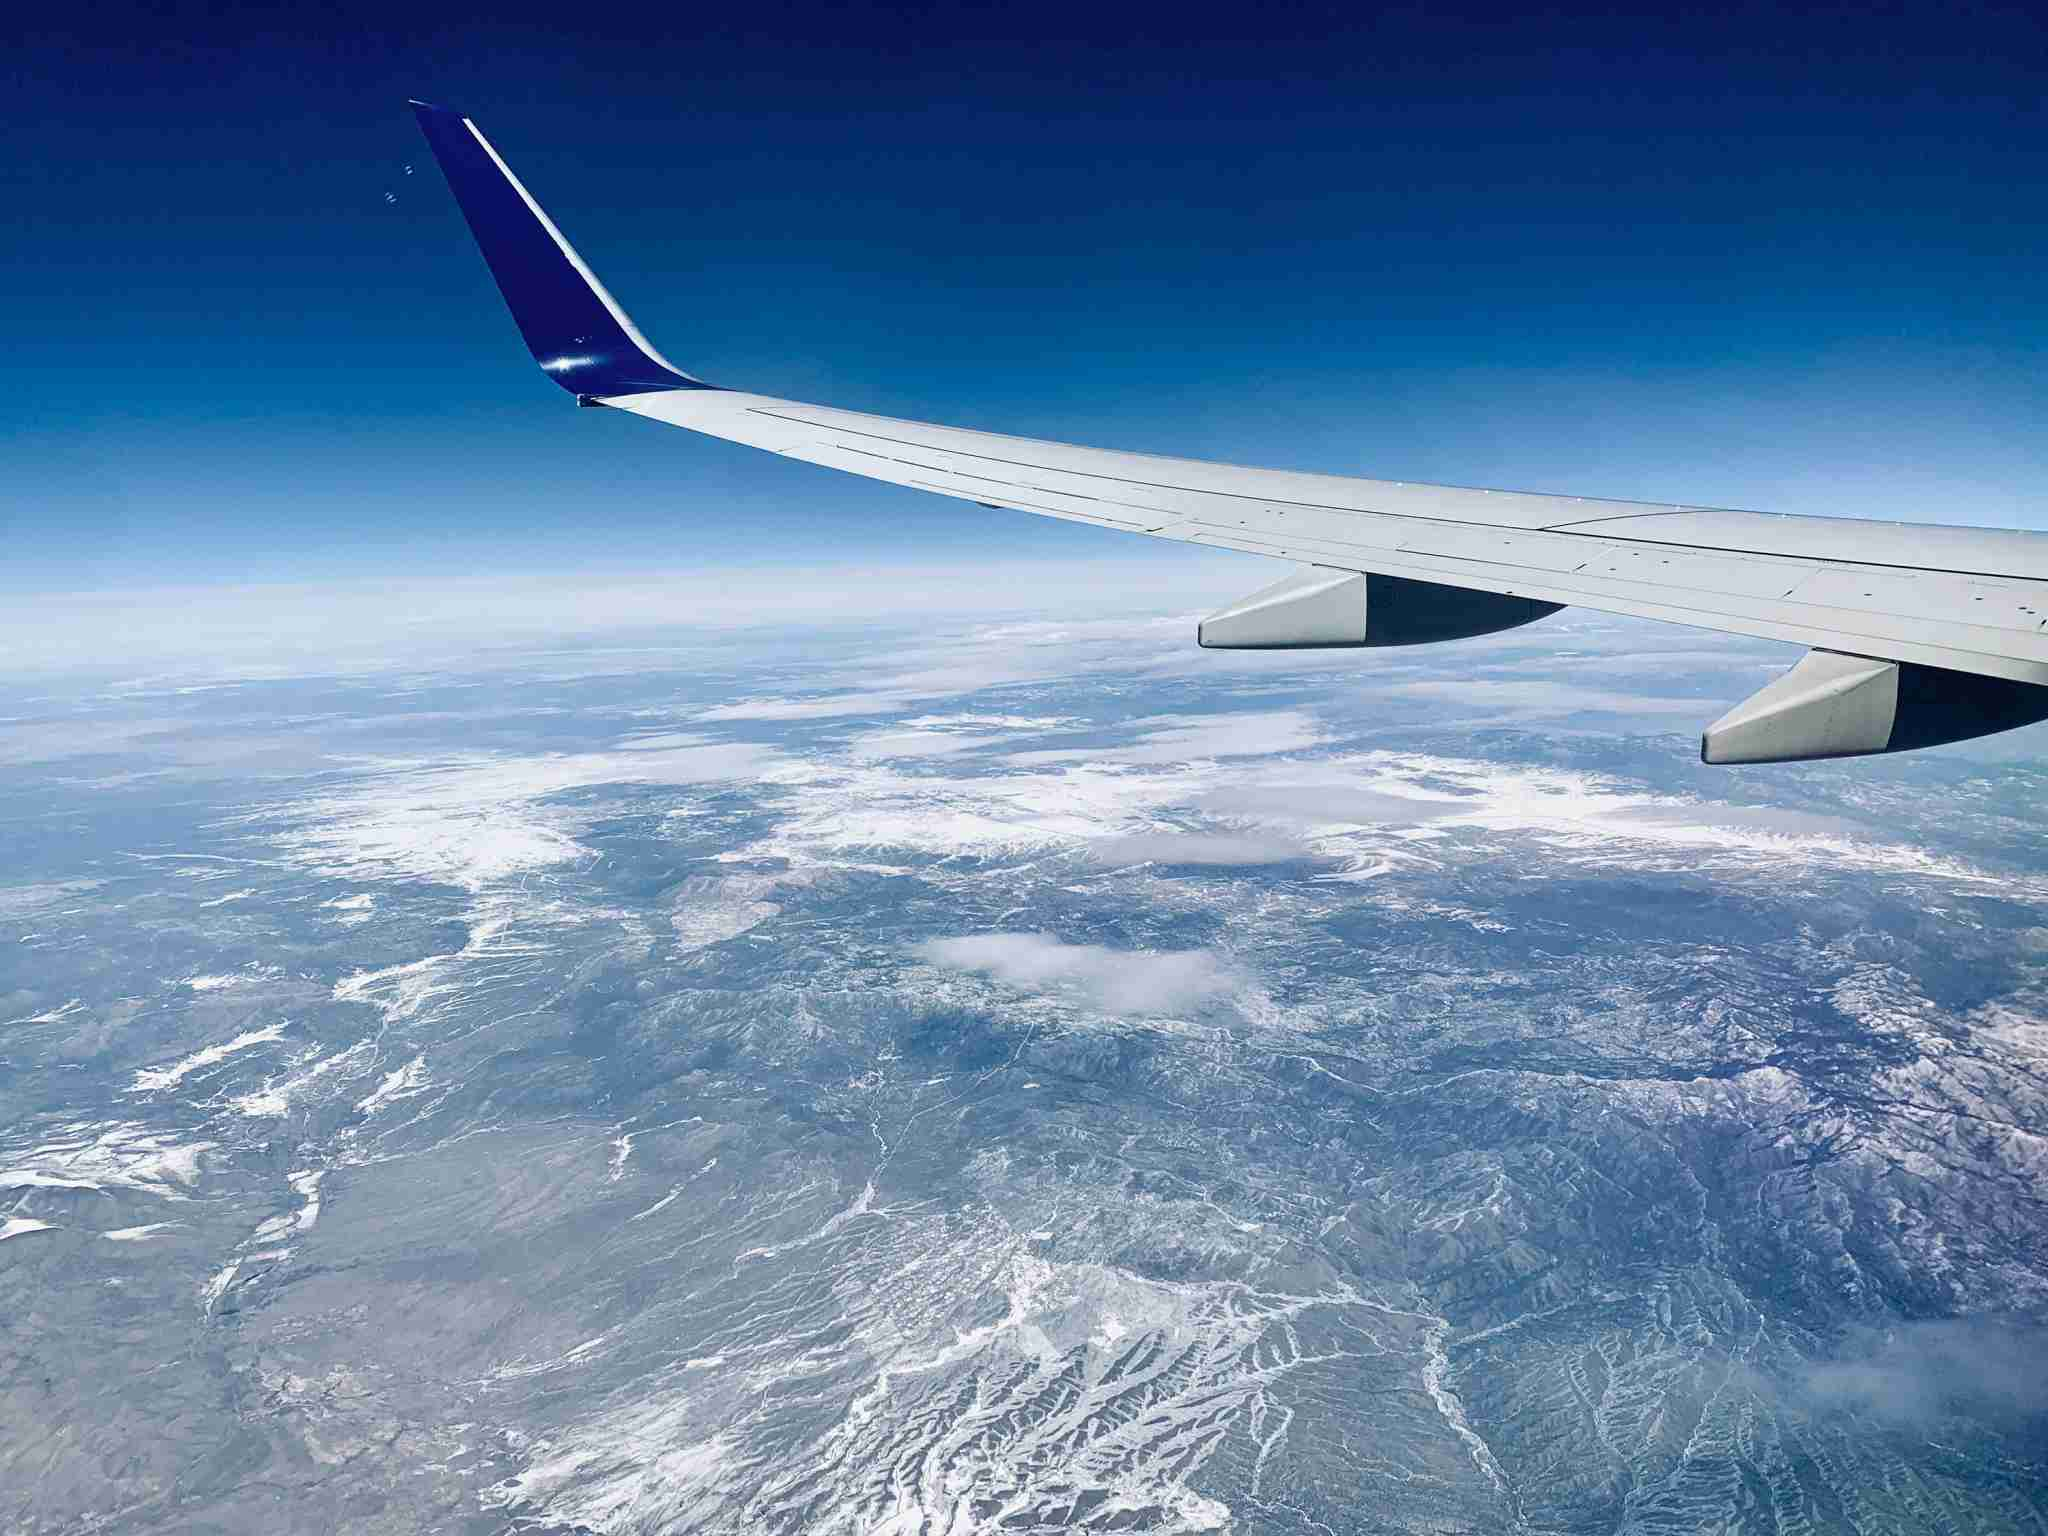 delta-wing-airplane-view-mountains-window-landscape